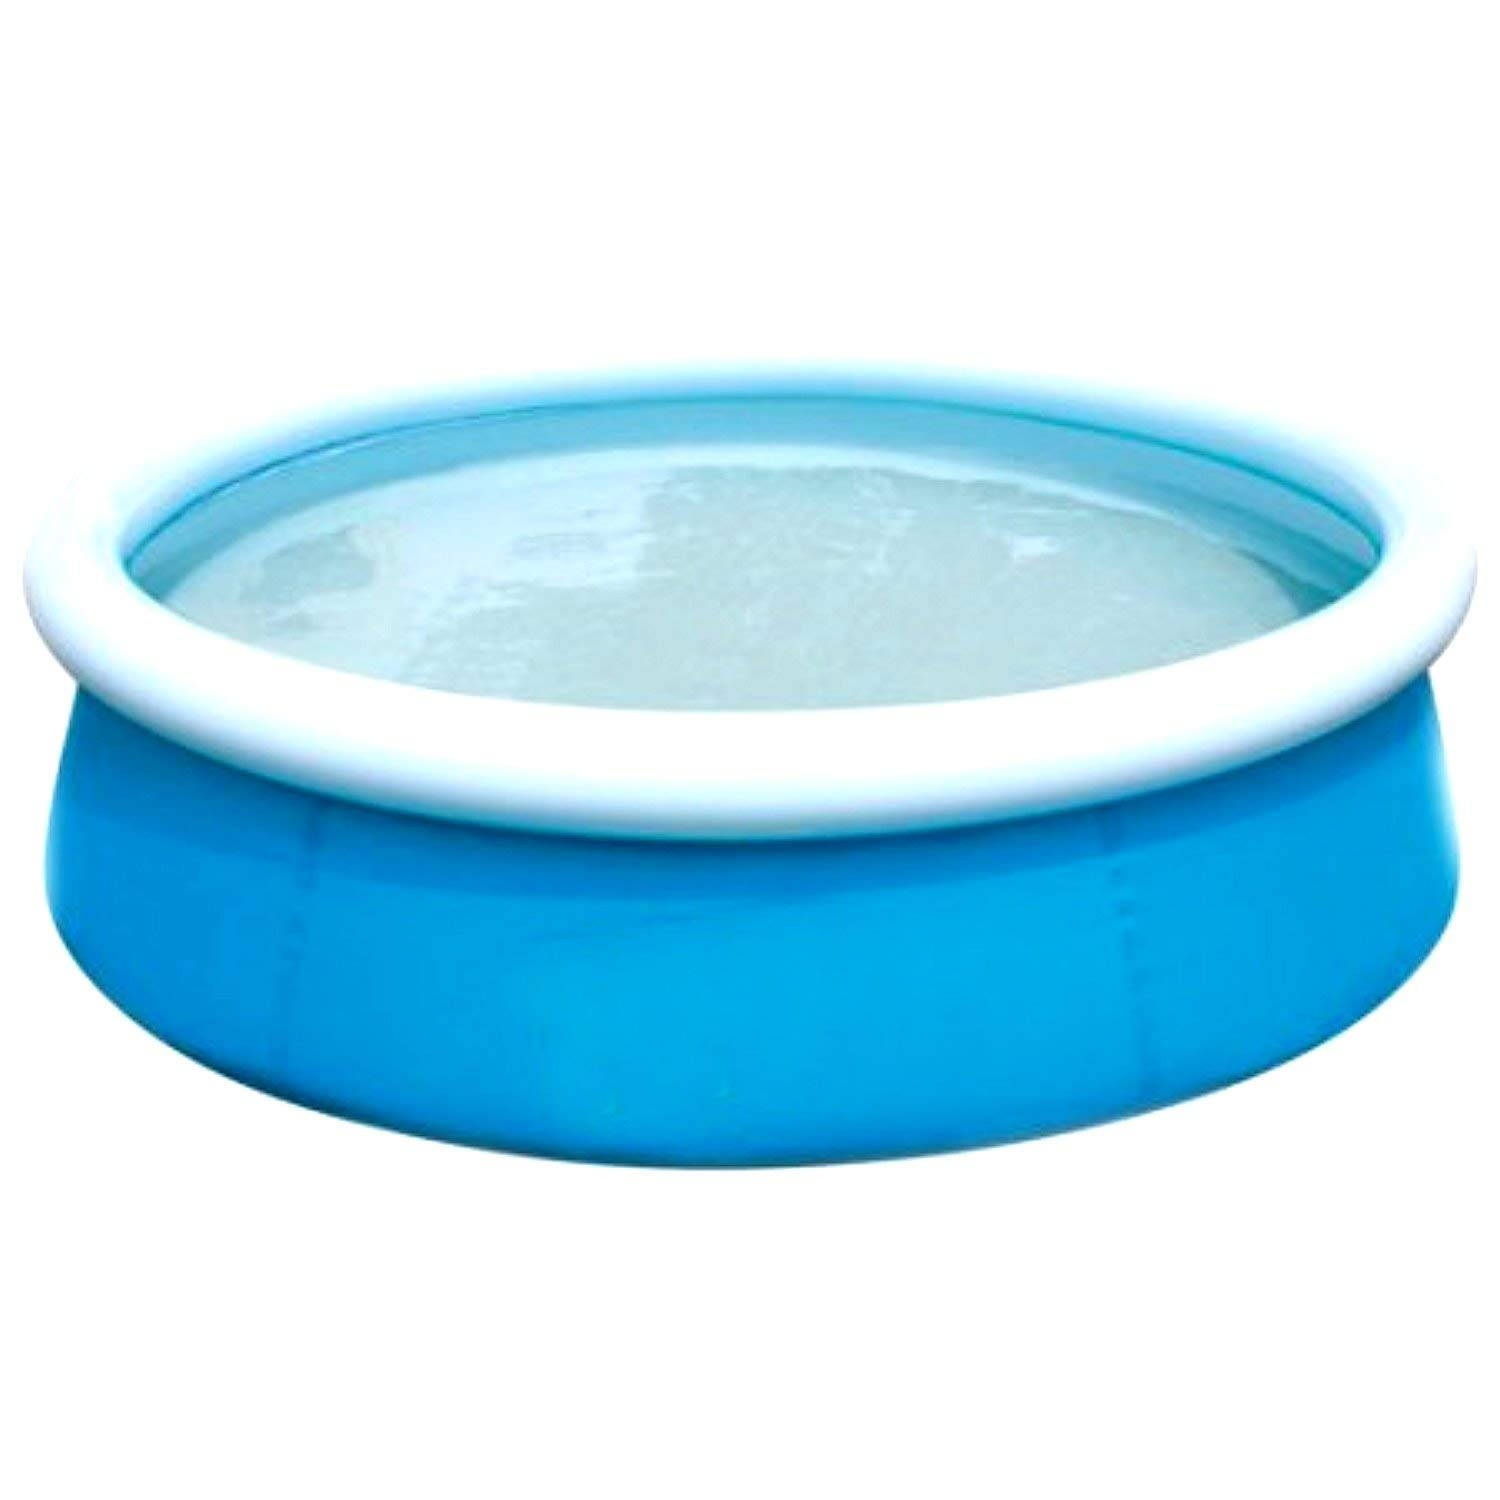 Kids Inflatable Pool This Kiddie Blow Up Above Ground Swimming Pool Is Great For Toddlers, Children To Have Outdoor Water Fun With Slide, Toys, Floats. First Fast Set Pool Center. (Blue)